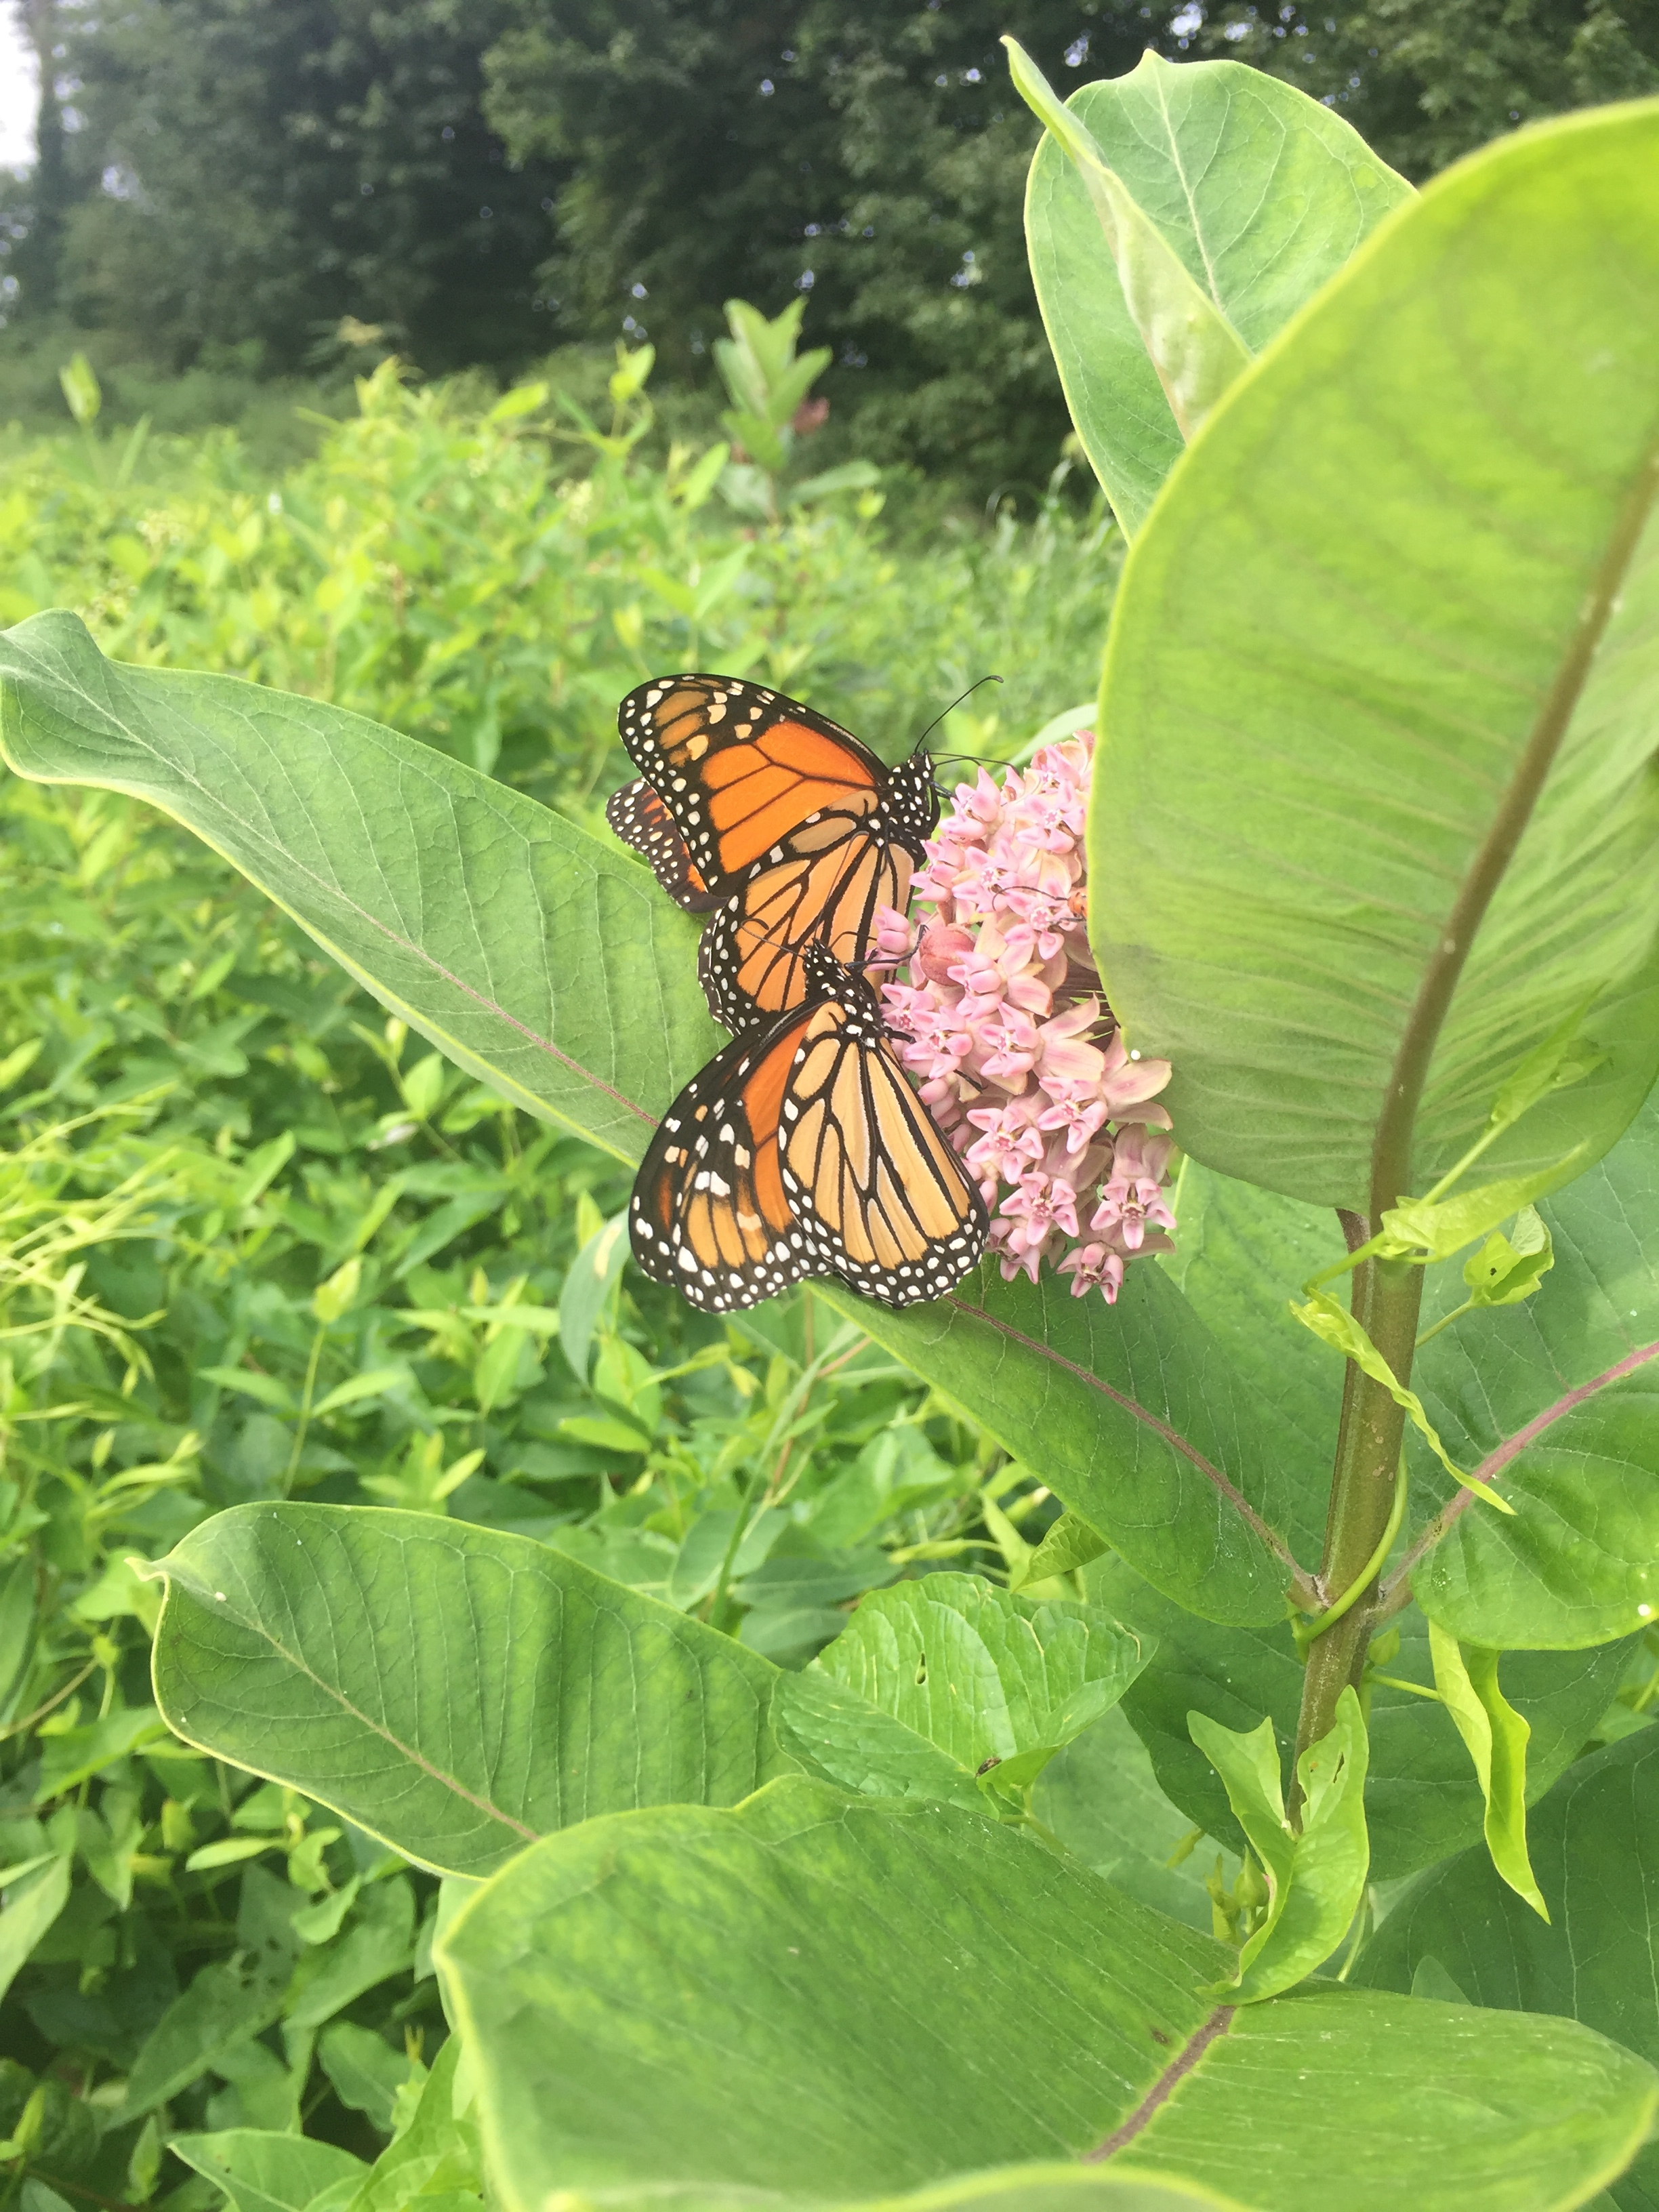 Milkweed/monarch